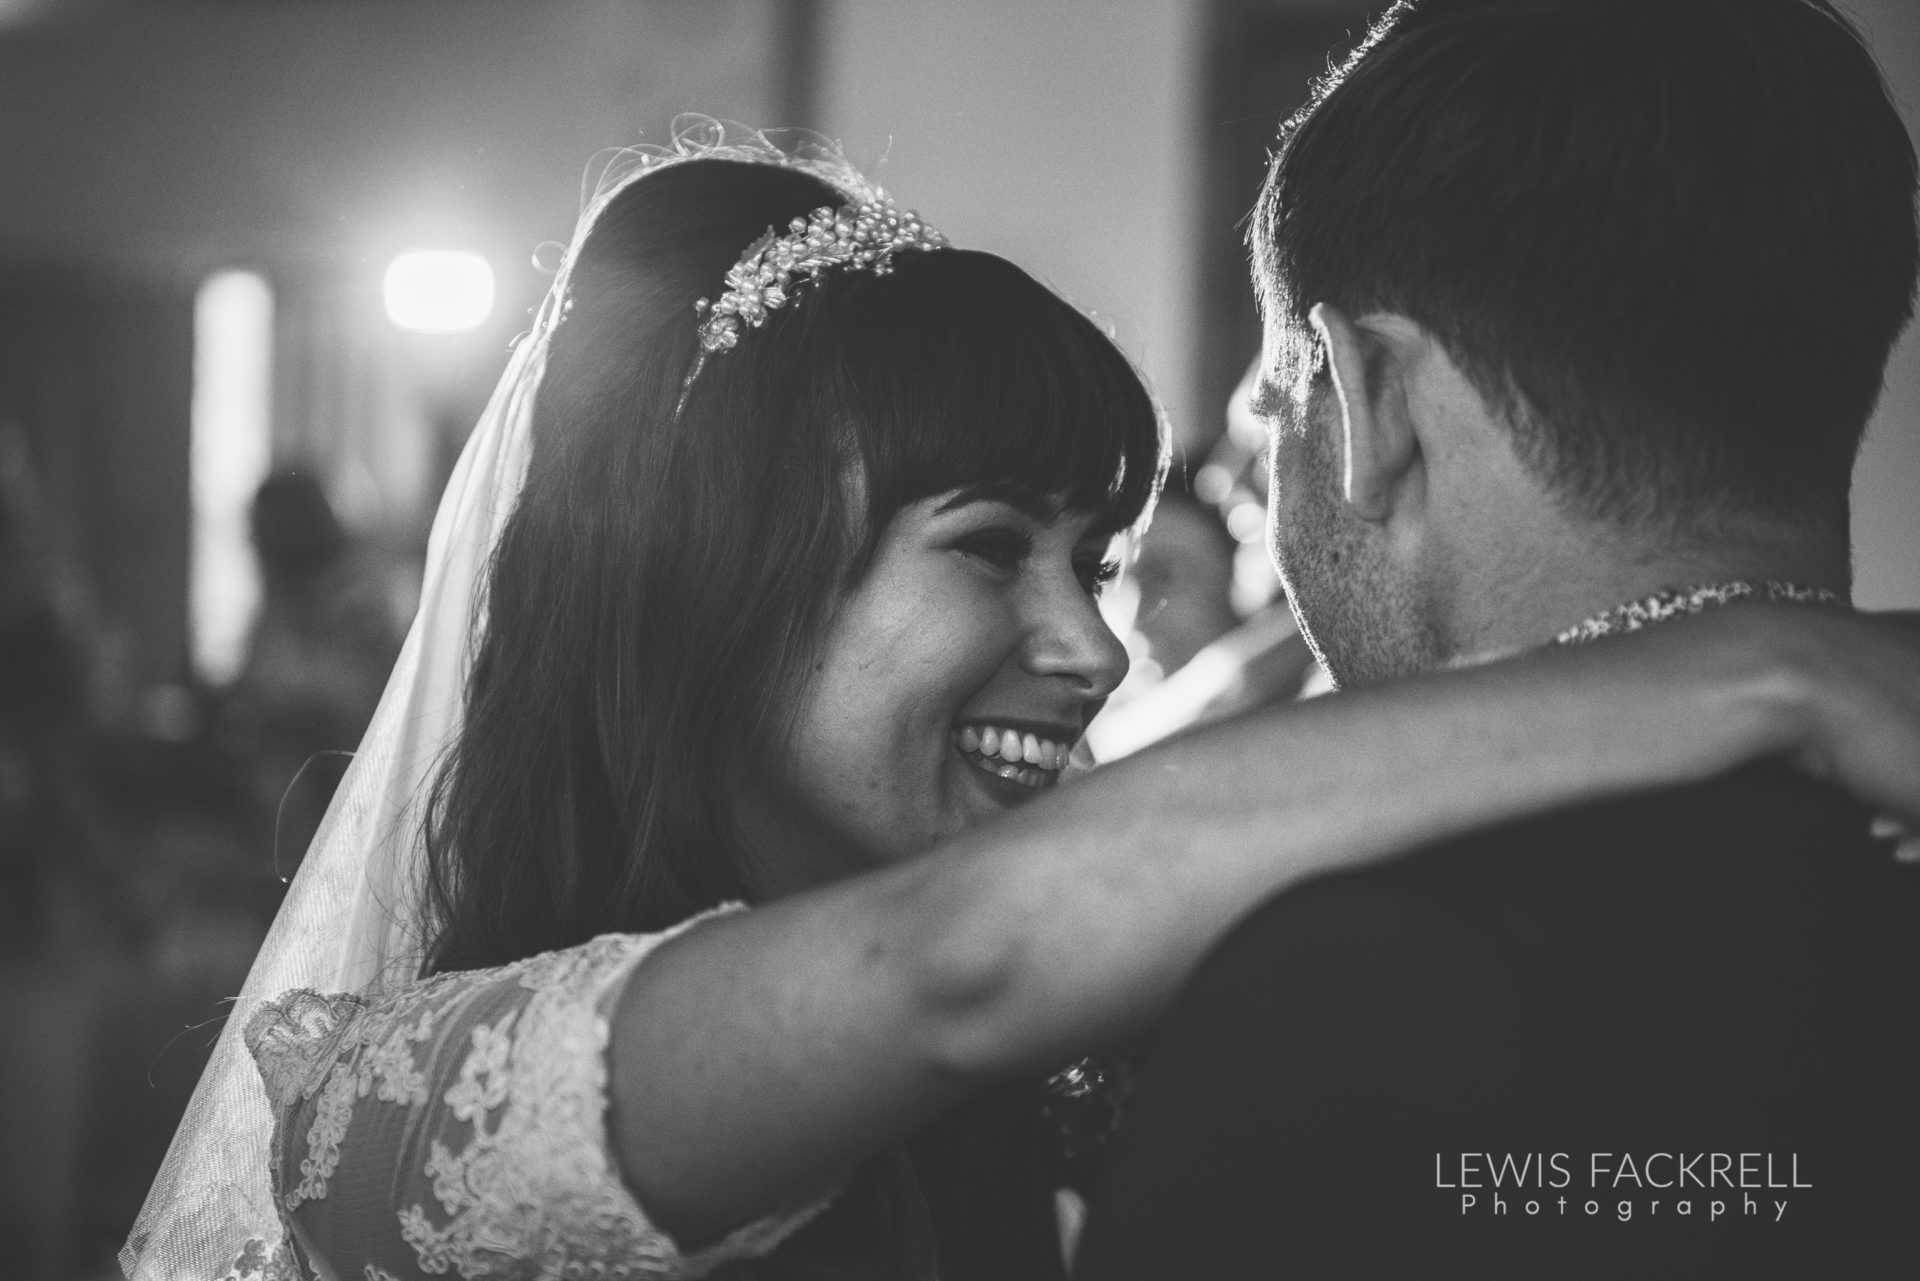 Lewis-Fackrell-Photography-Wedding-Photographer-Cardiff-Swansea-Bristol-Newport-Pre-wedding-photoshoot-cerian-dan-canada-lake-lodge-llantrisant--107